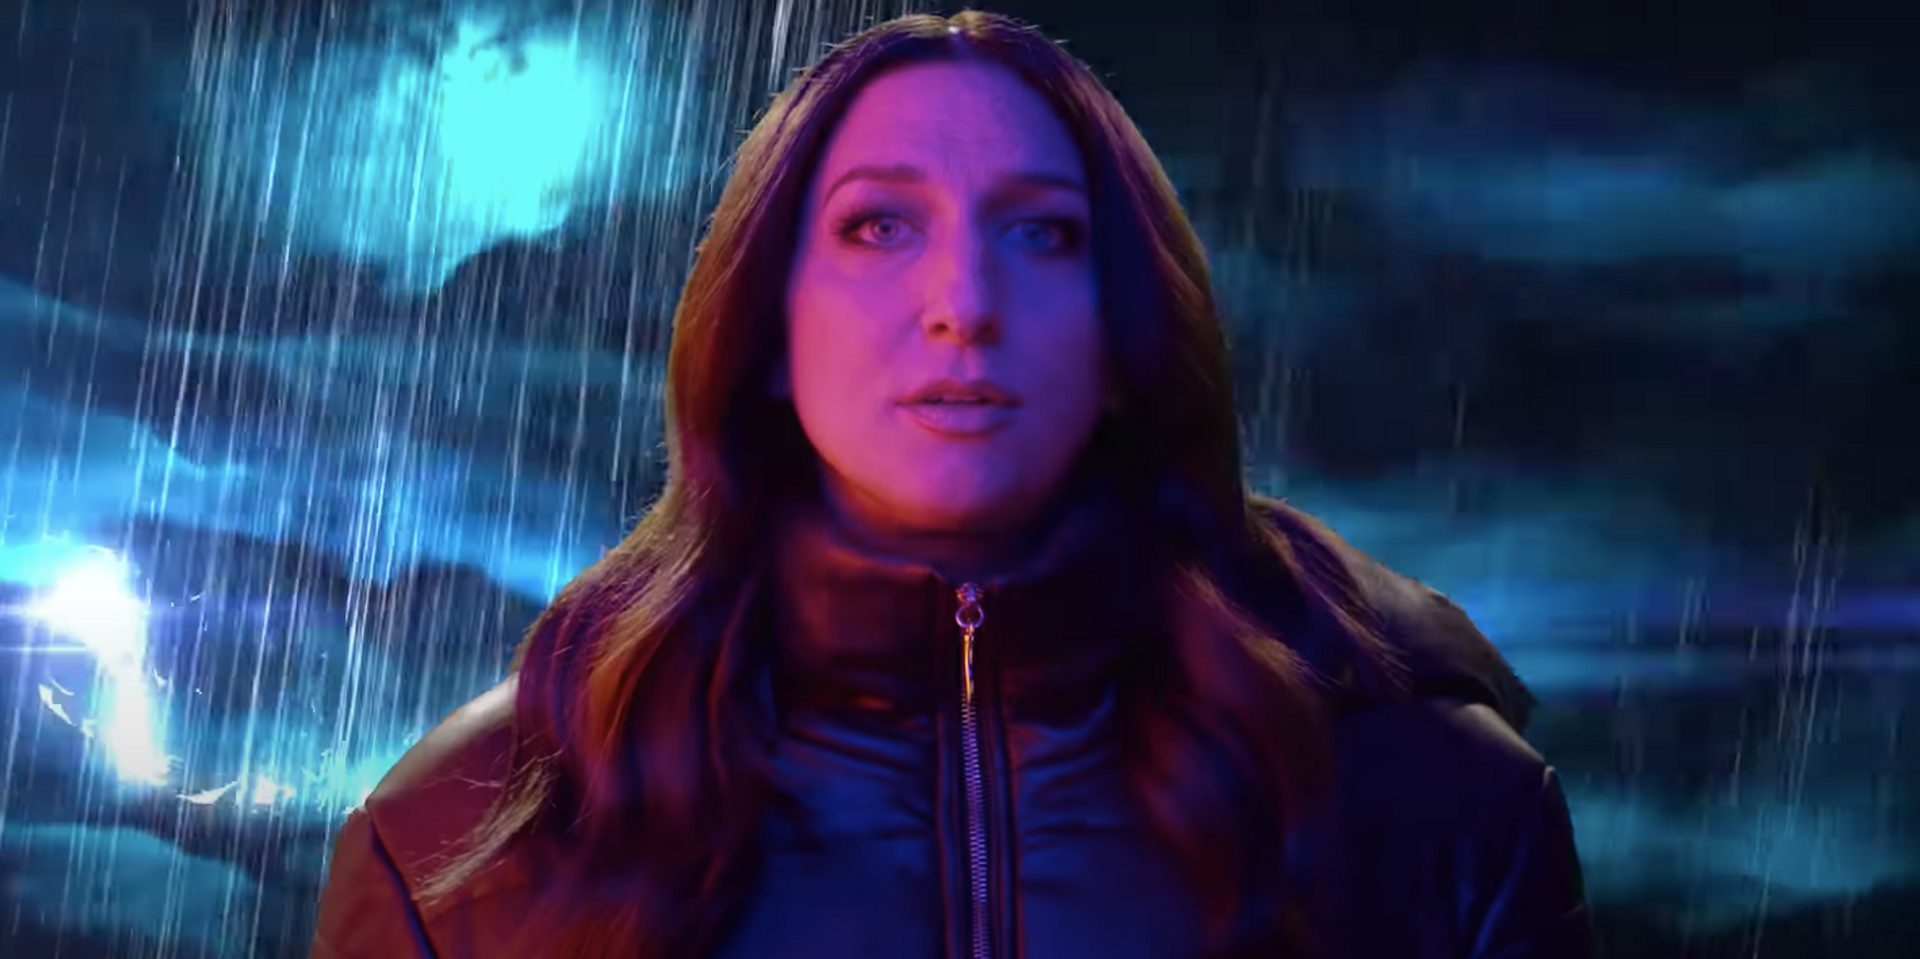 Former Brooklyn Nine-Nine star Chelsea Peretti just made an entire EP about coffee